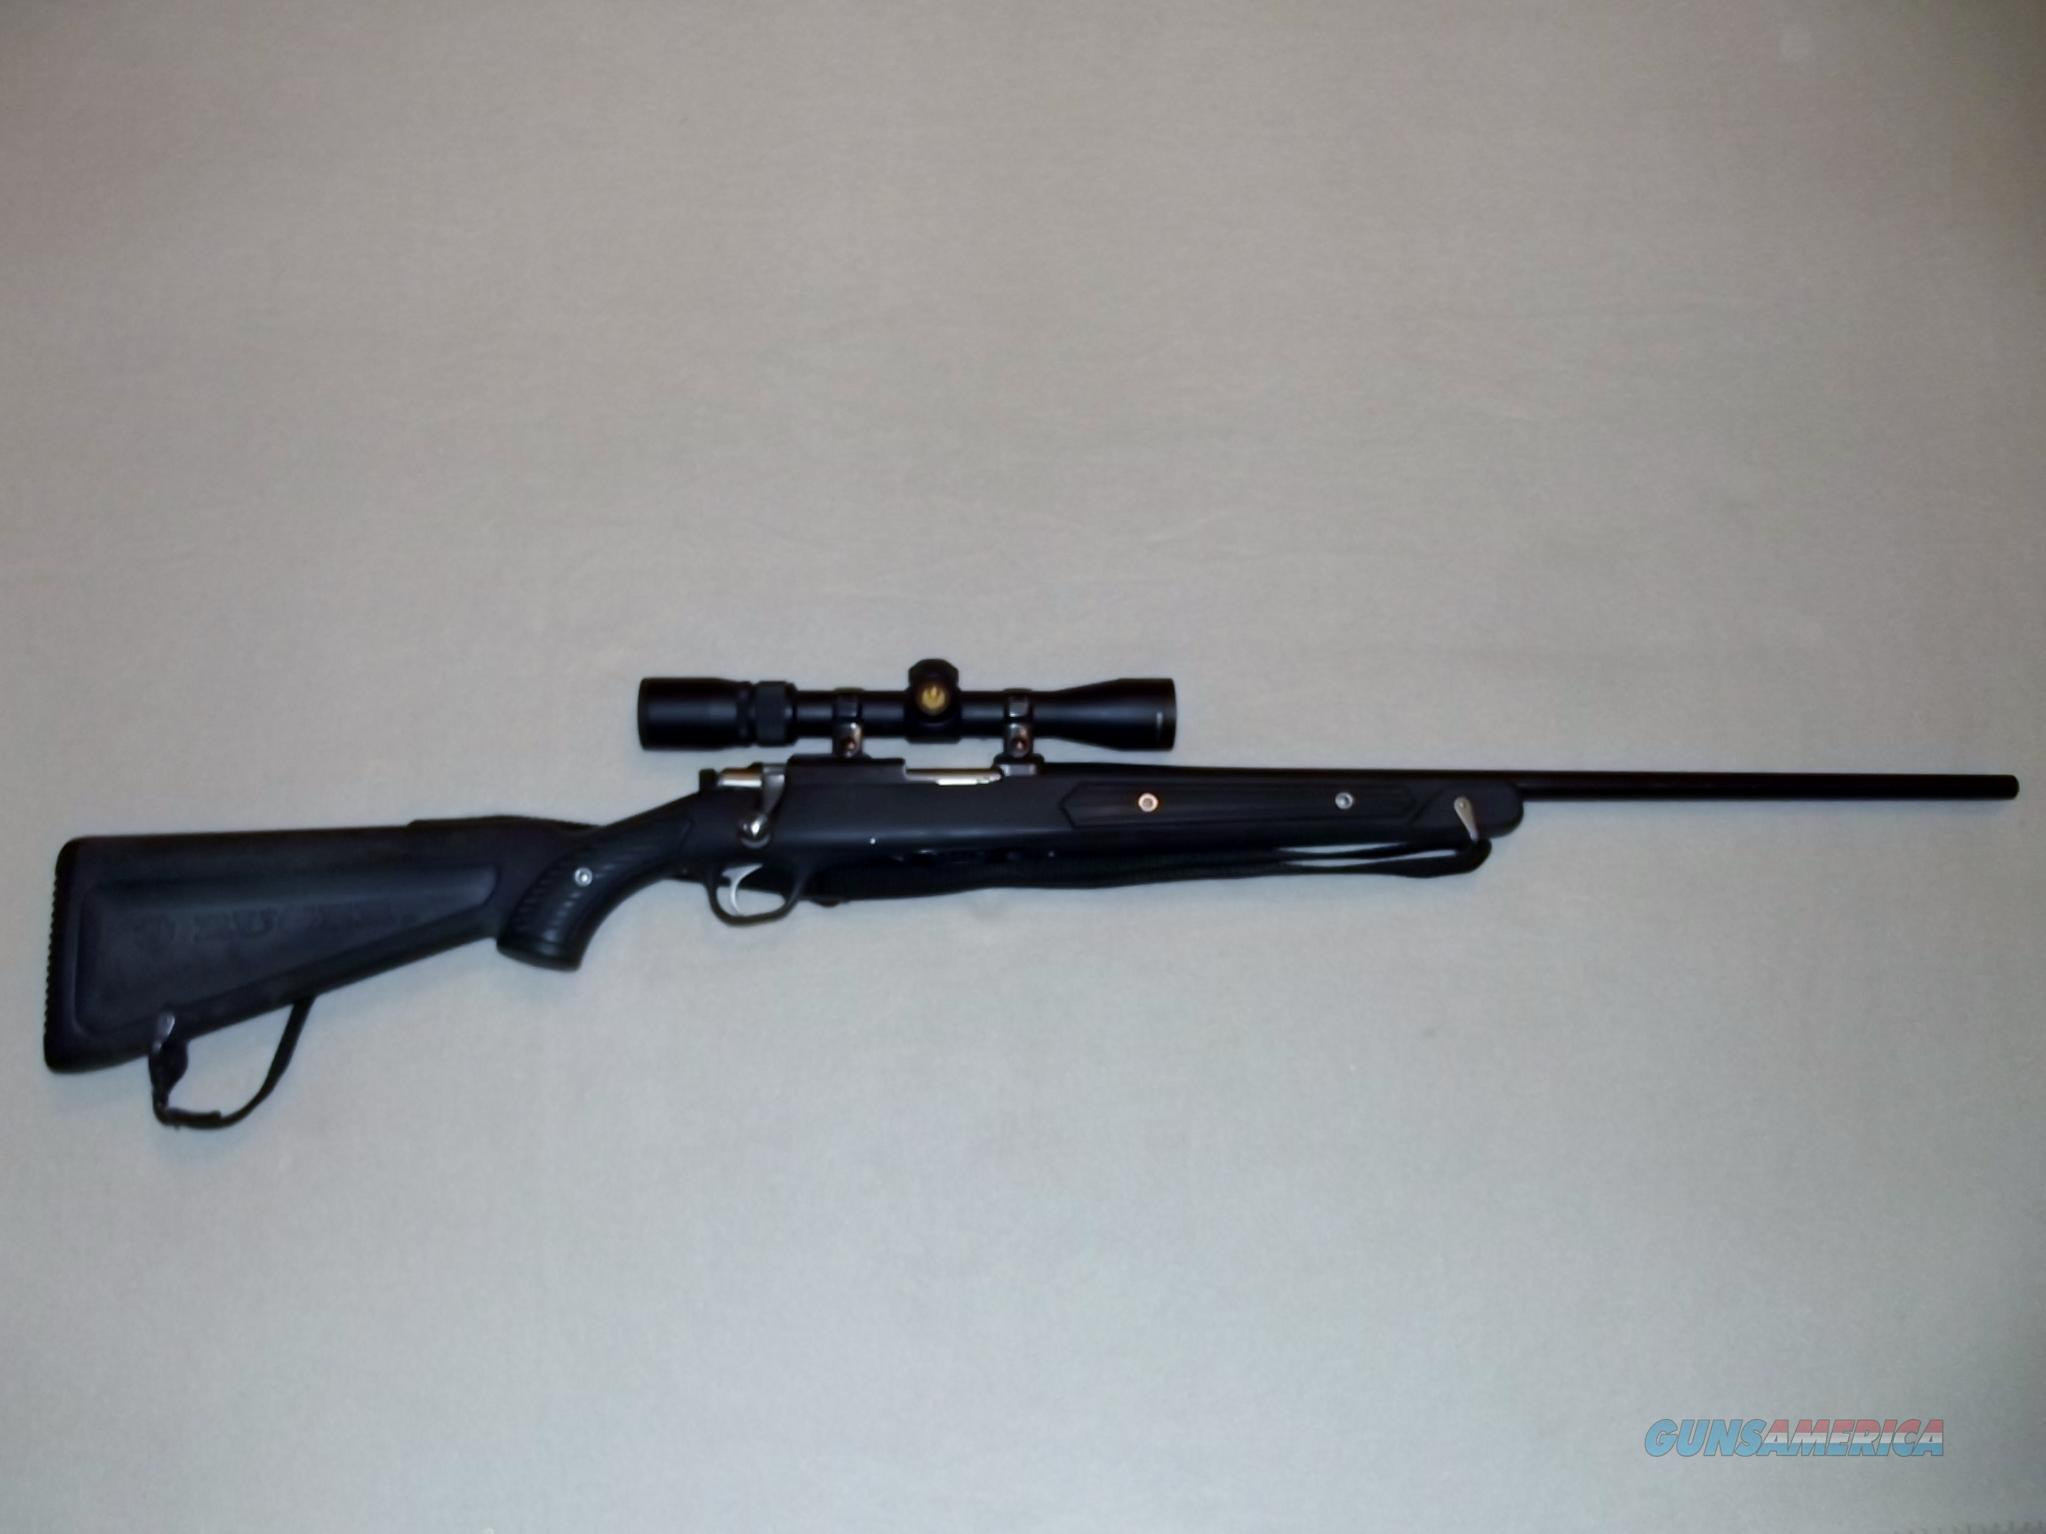 Ruger 77 17 17 Hmr Skeleton Stock For Sale